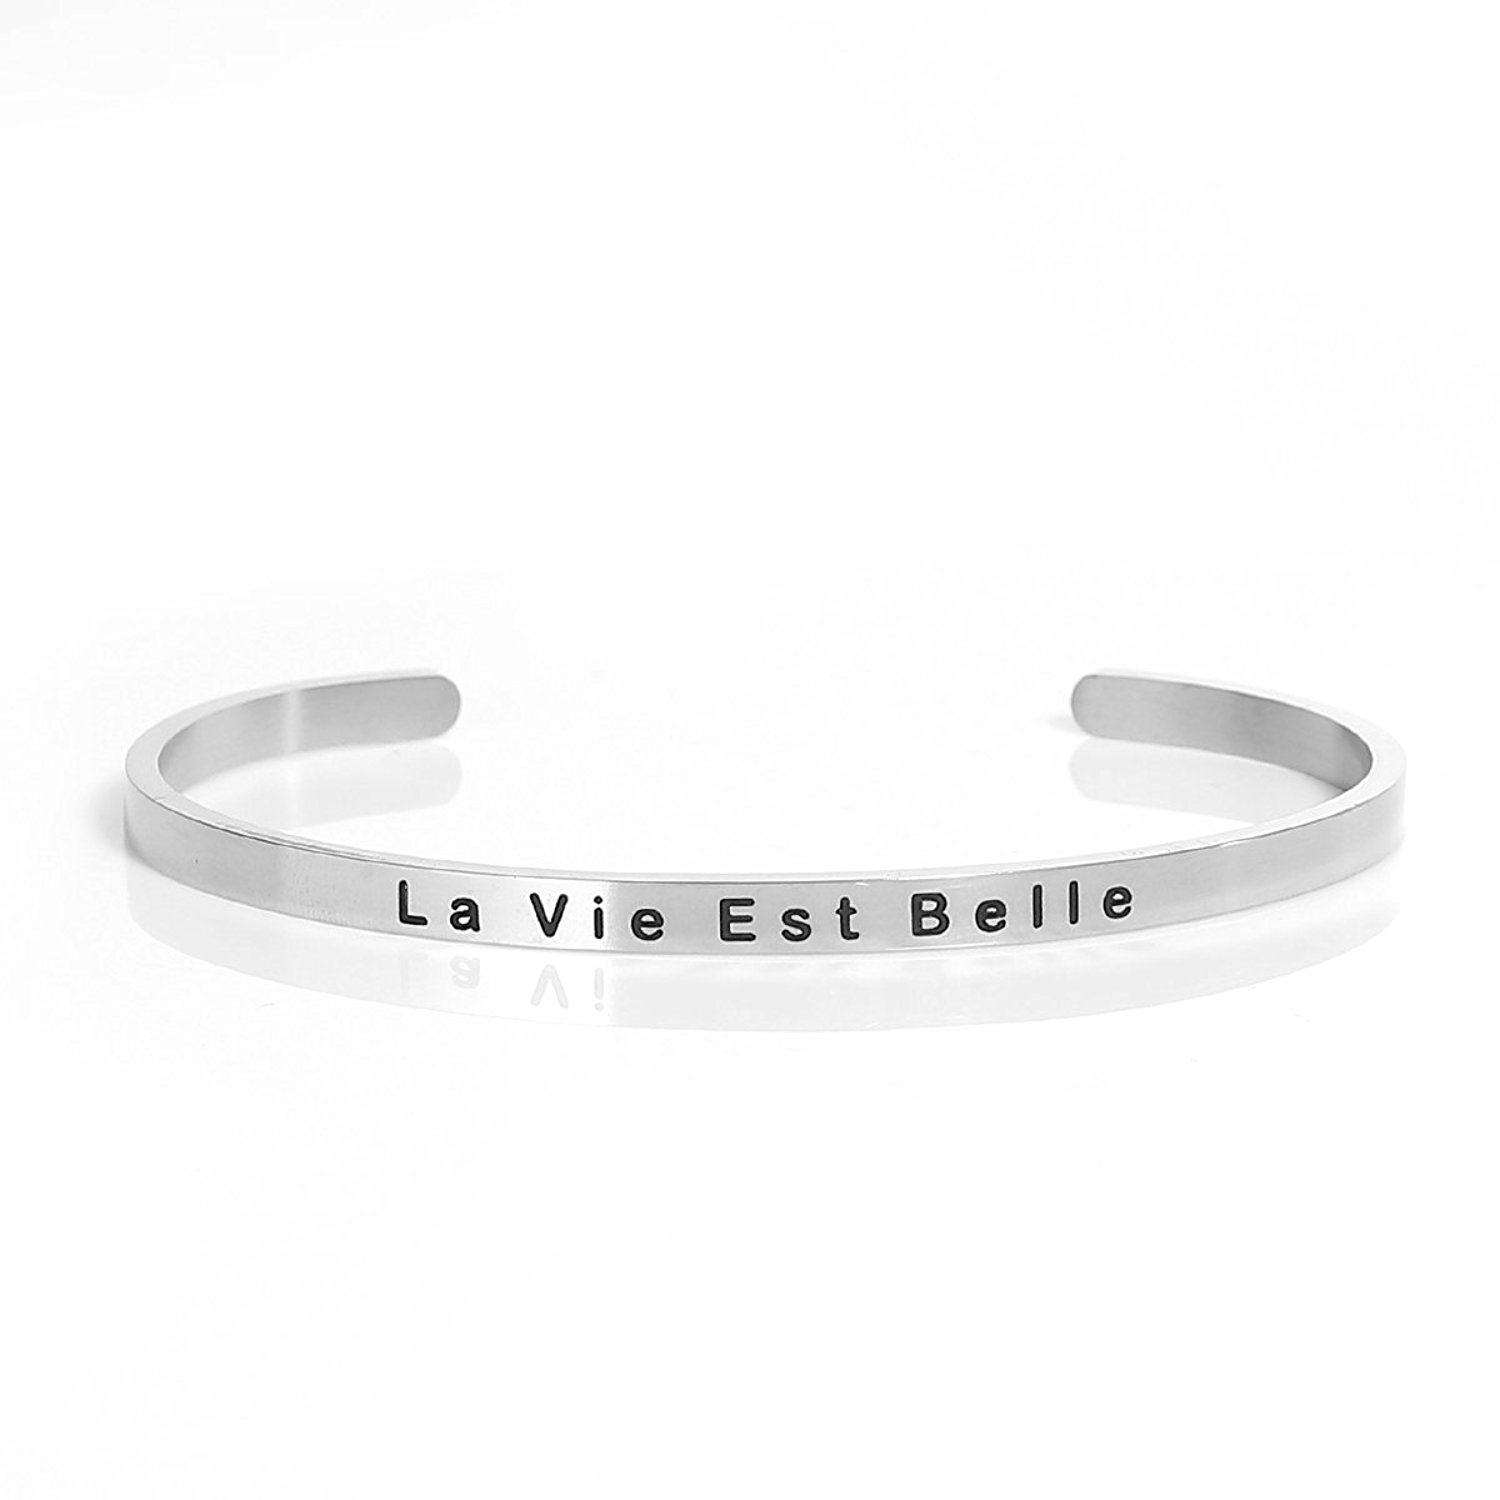 SEXY SPARKLES Stainless Steel La Vie Est Belle Life is Beautiful Positive Quotes Energy Open Cuff Bangle Bracelet 4745